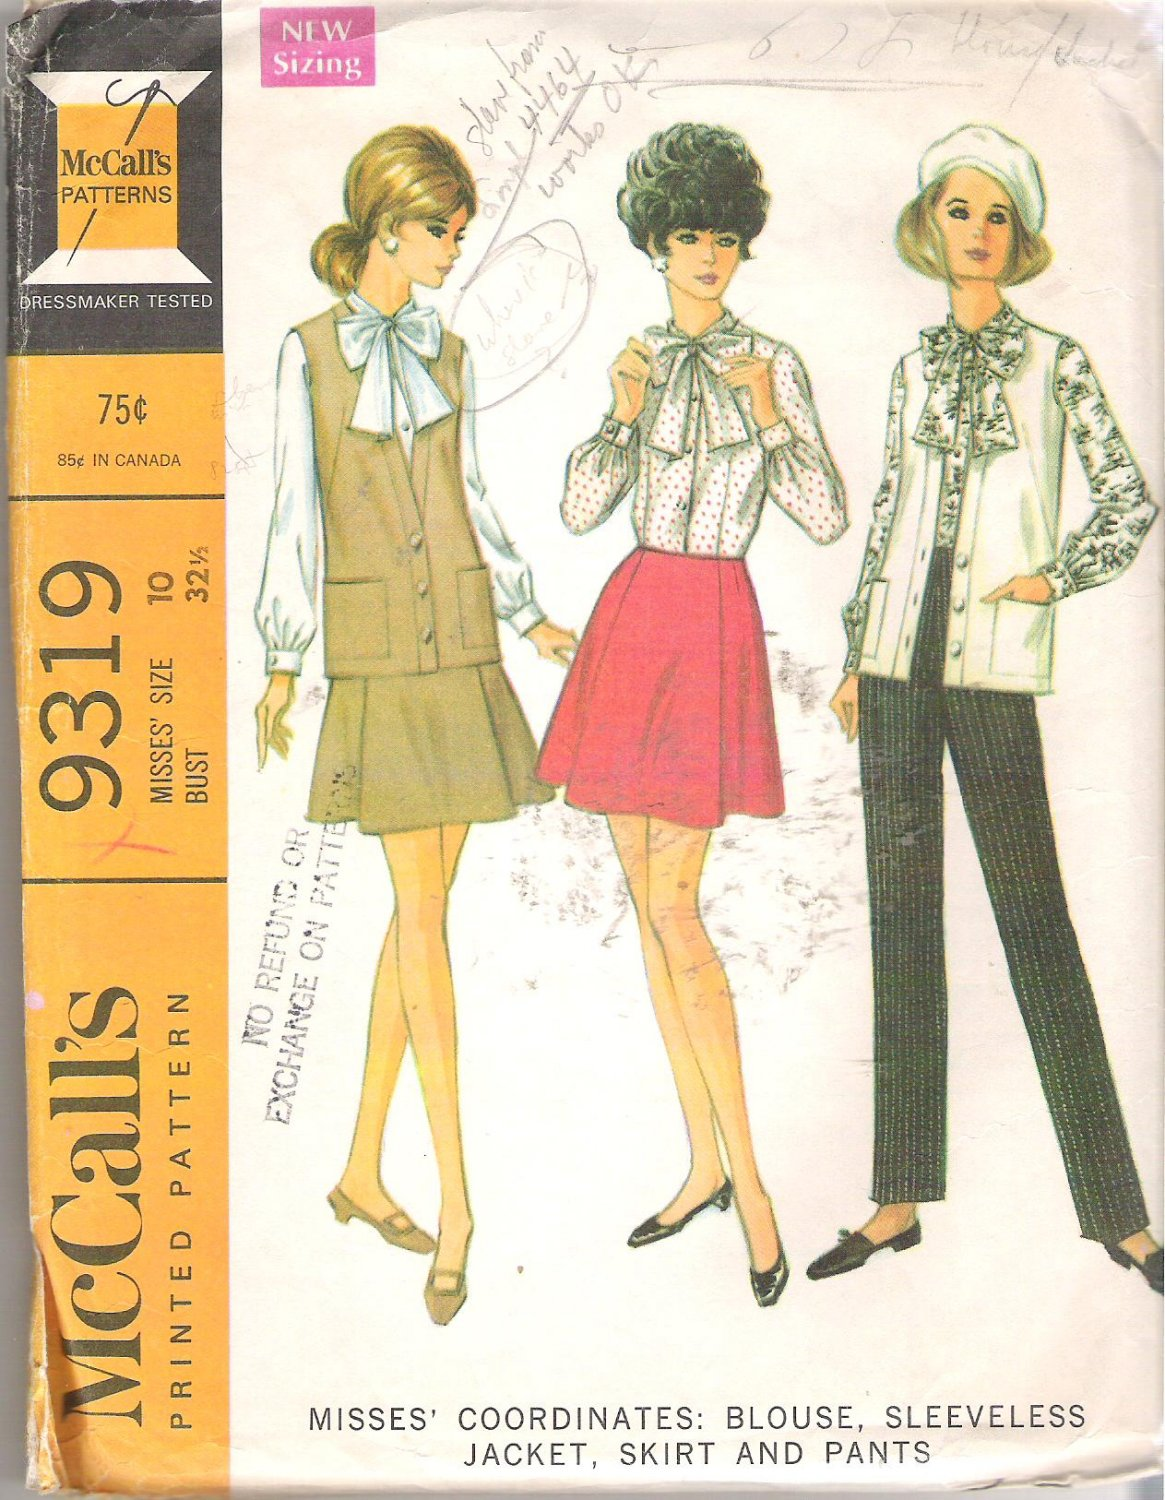 McCalls 9319 (1968) Vintage Pattern Blouse Sleeveless Jacket Skirt Pants  Size 10 Partial Cut